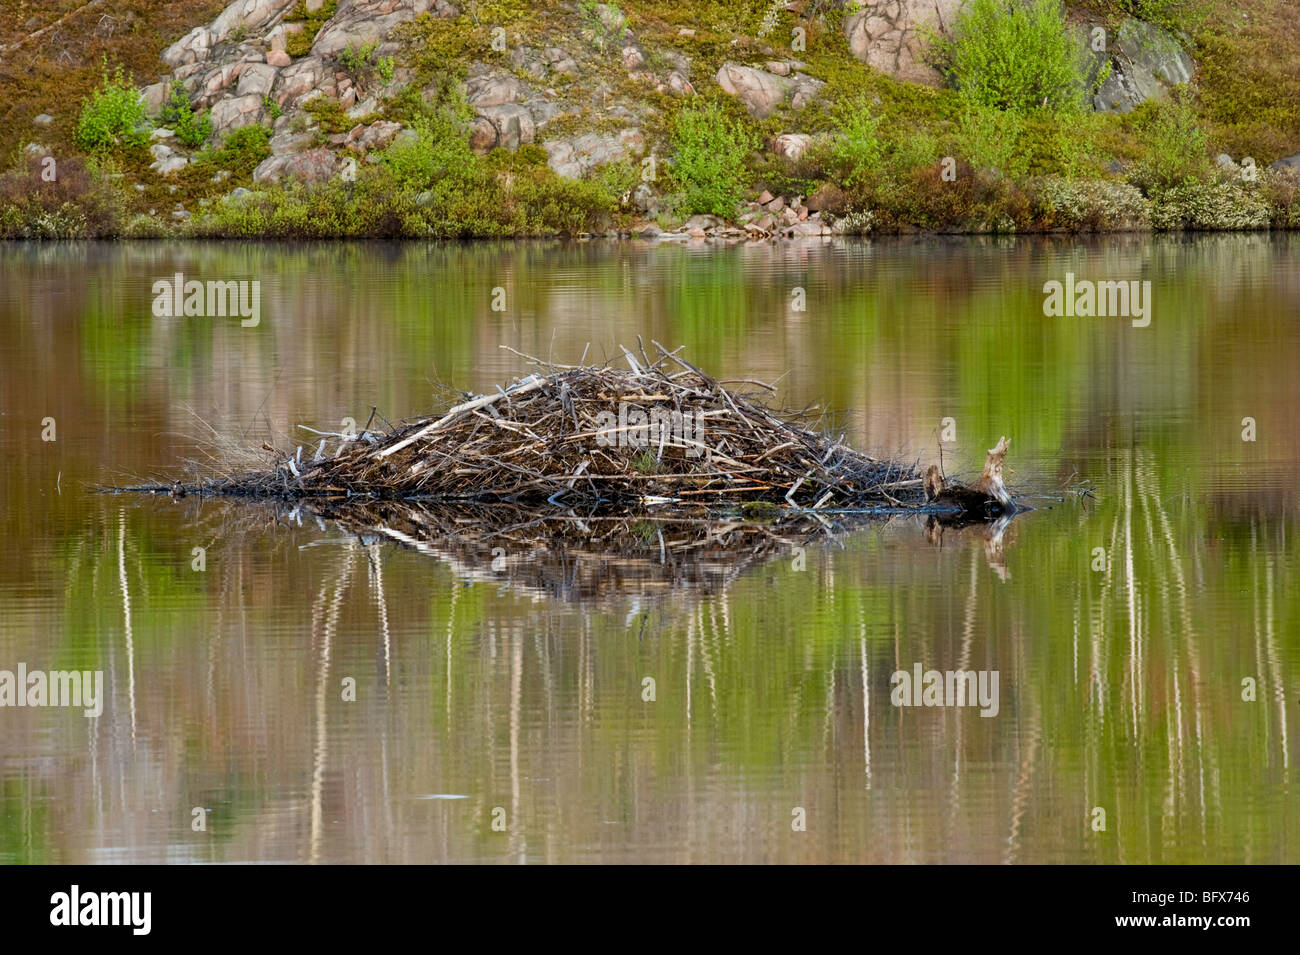 Beaver lodge and early spring foliage colour reflected in beaver pond, Greater Sudbury, Ontario, Canada - Stock Image